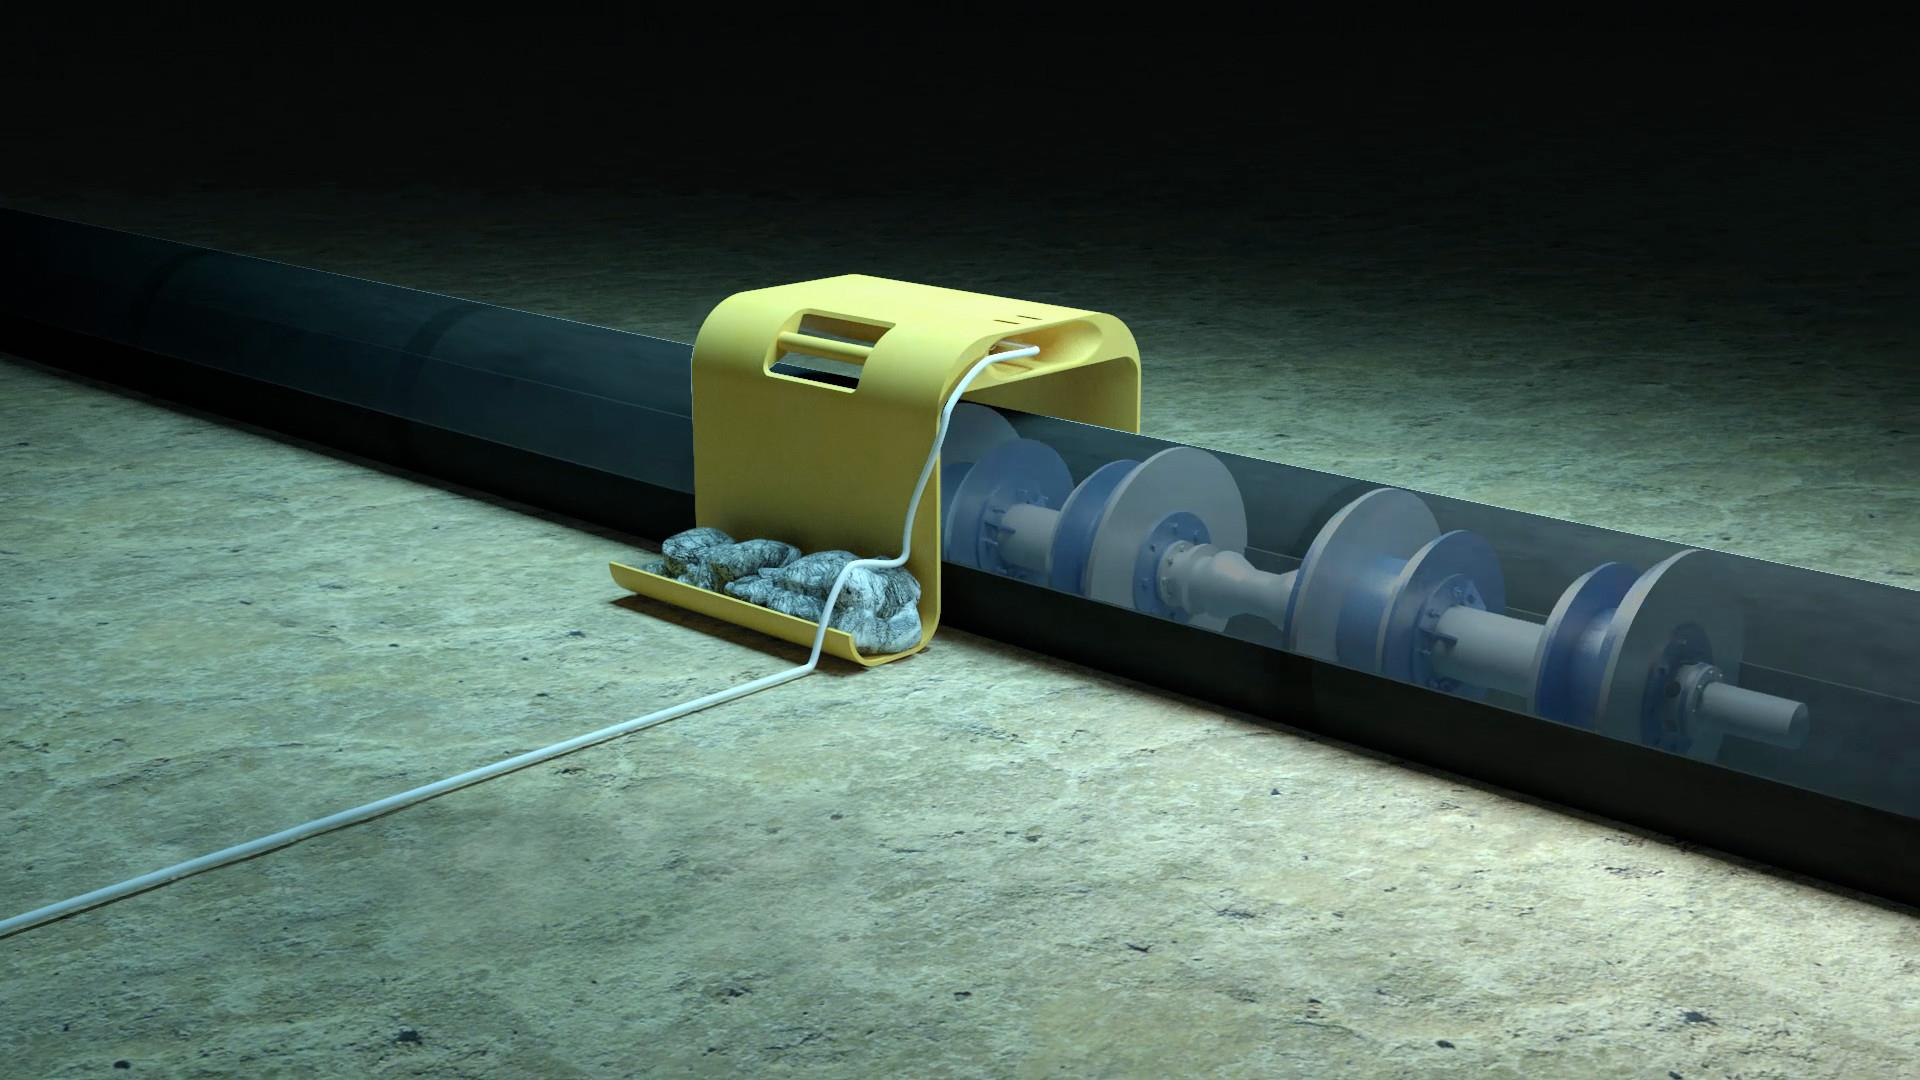 Render of subsea pig tracking technology in operation on the seafloor